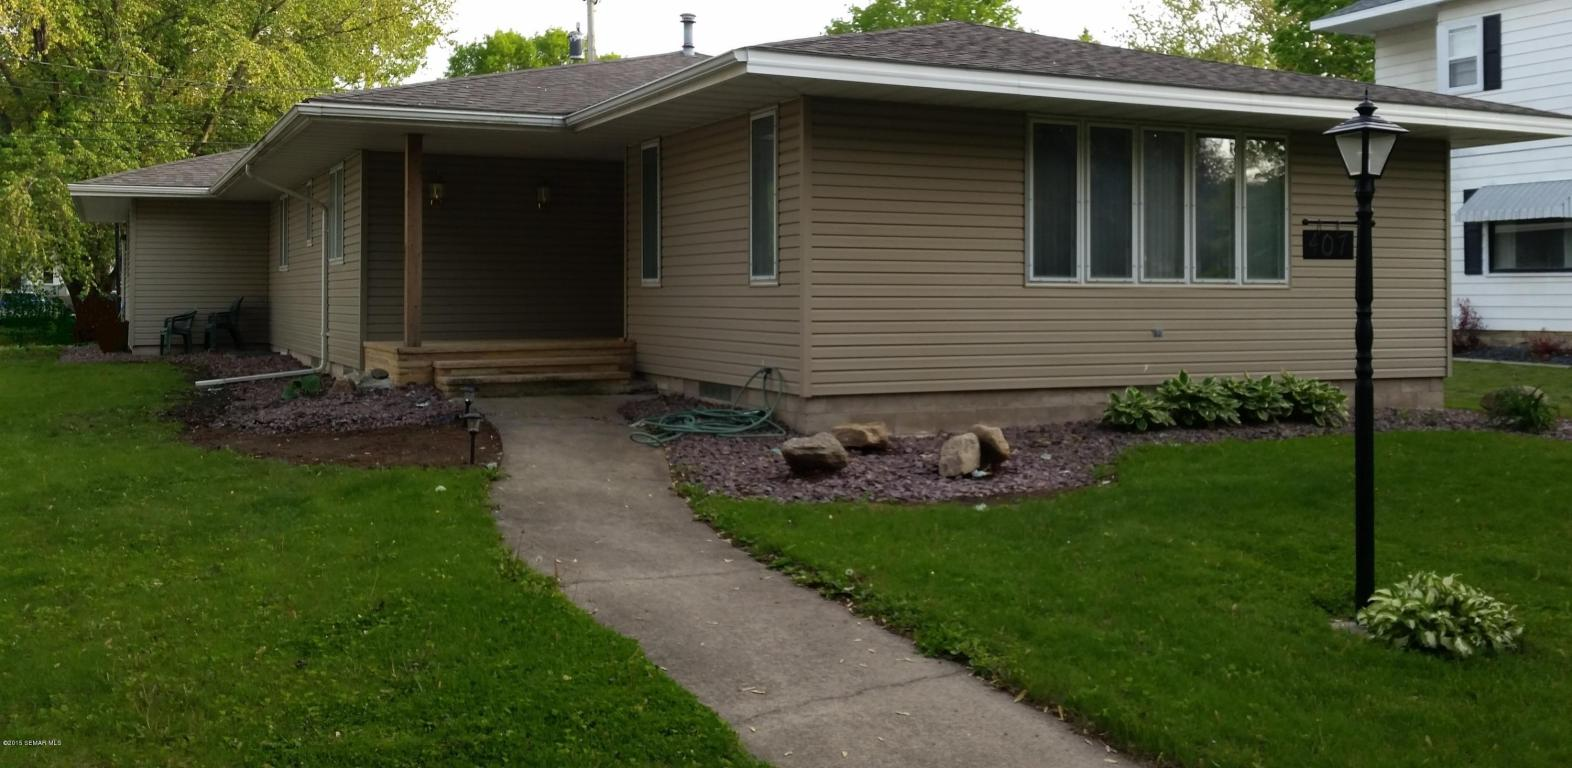 407 Irvin St, West Concord, MN 55985